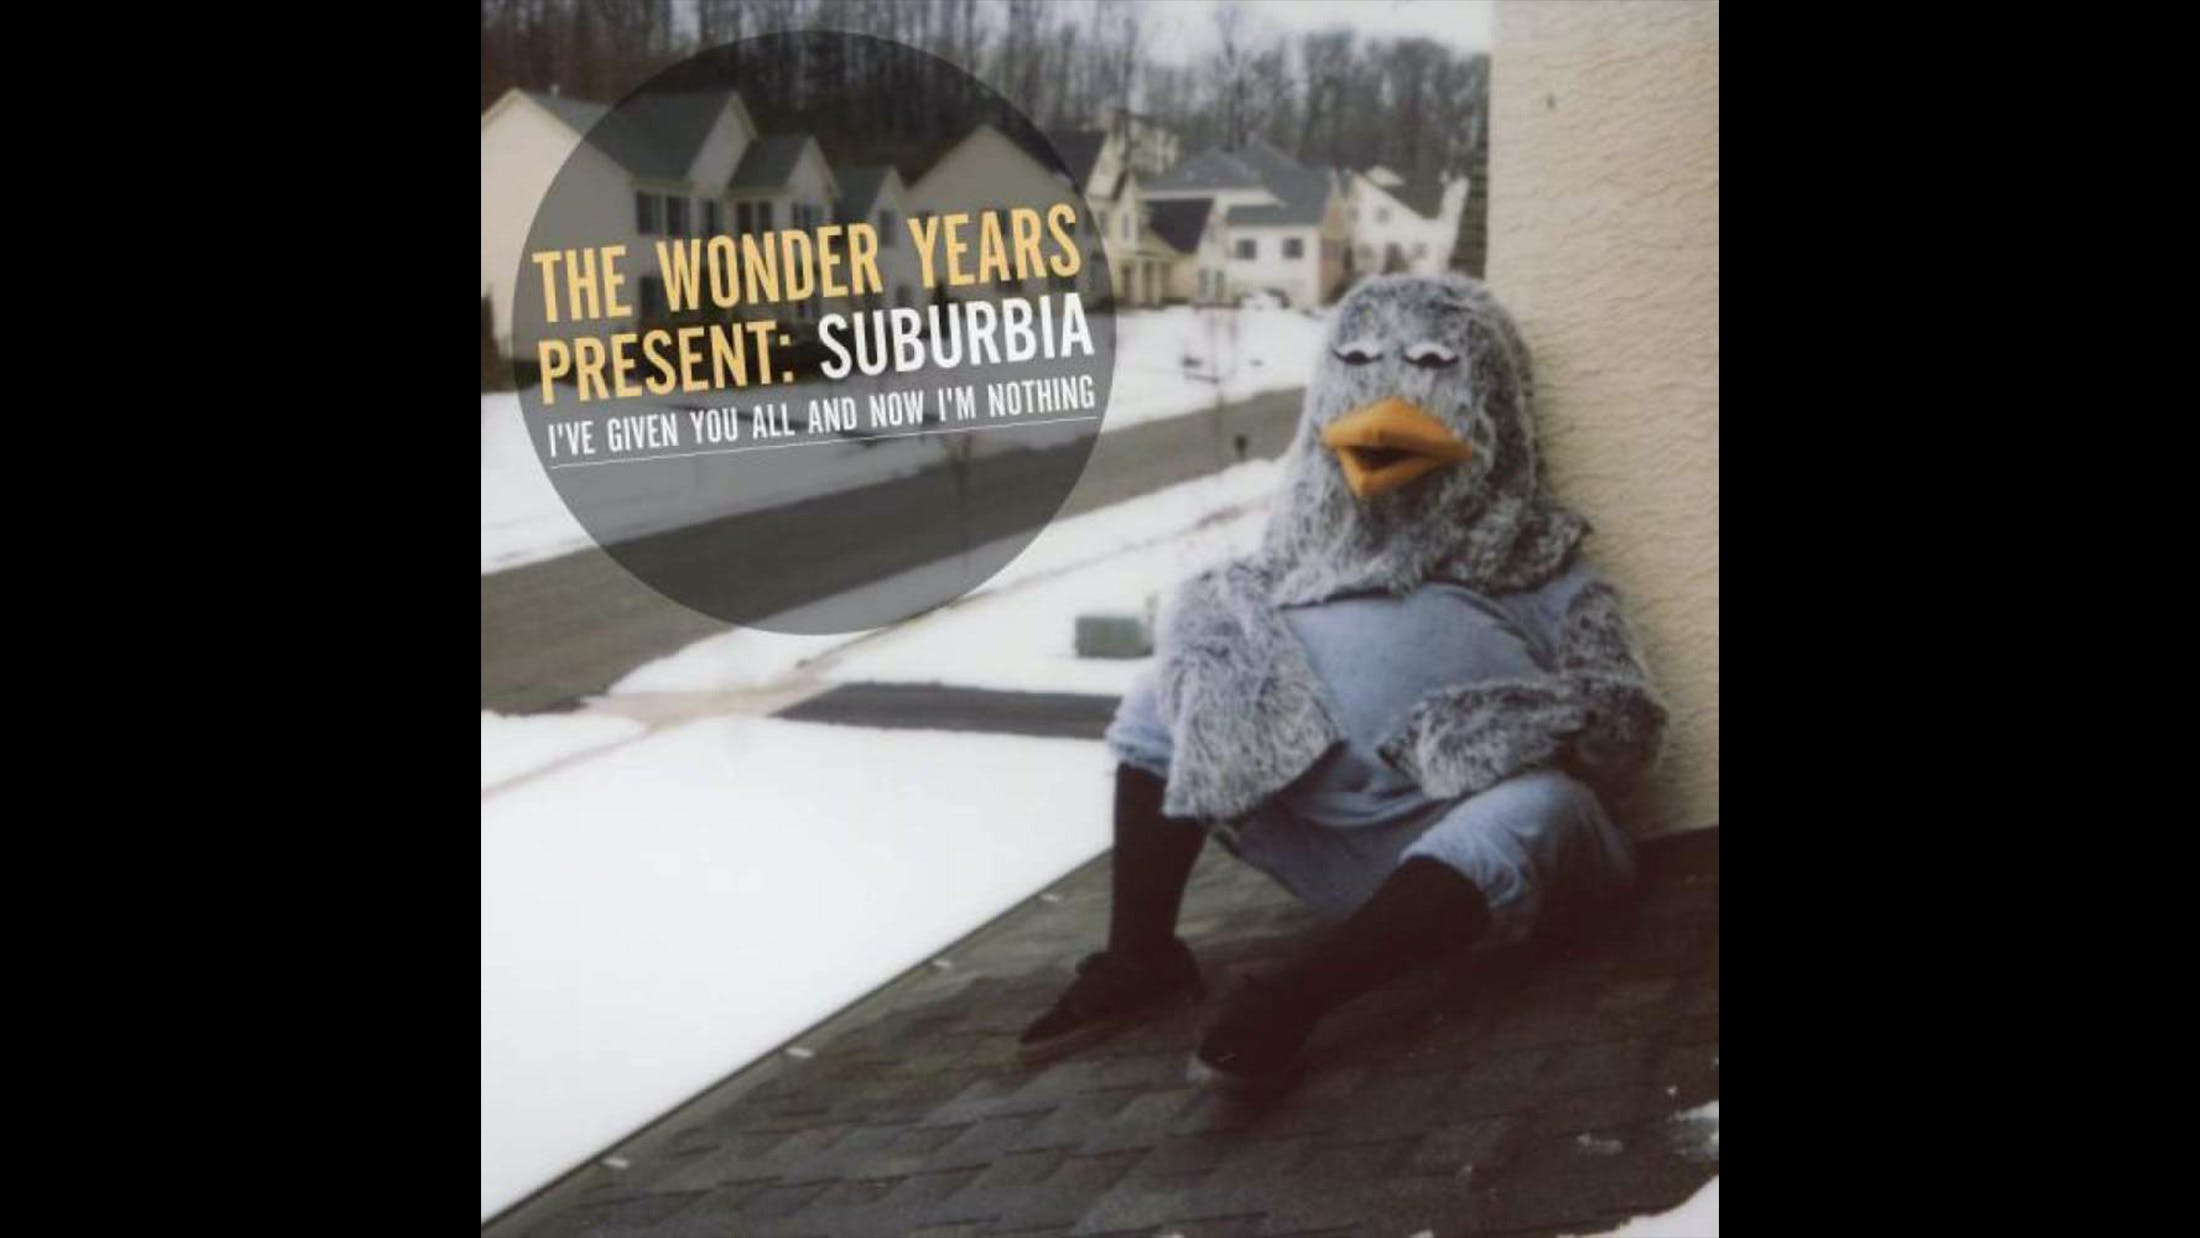 10. The Wonder Years - Suburbia I've Given You All And Now I'm Nothing (2011)